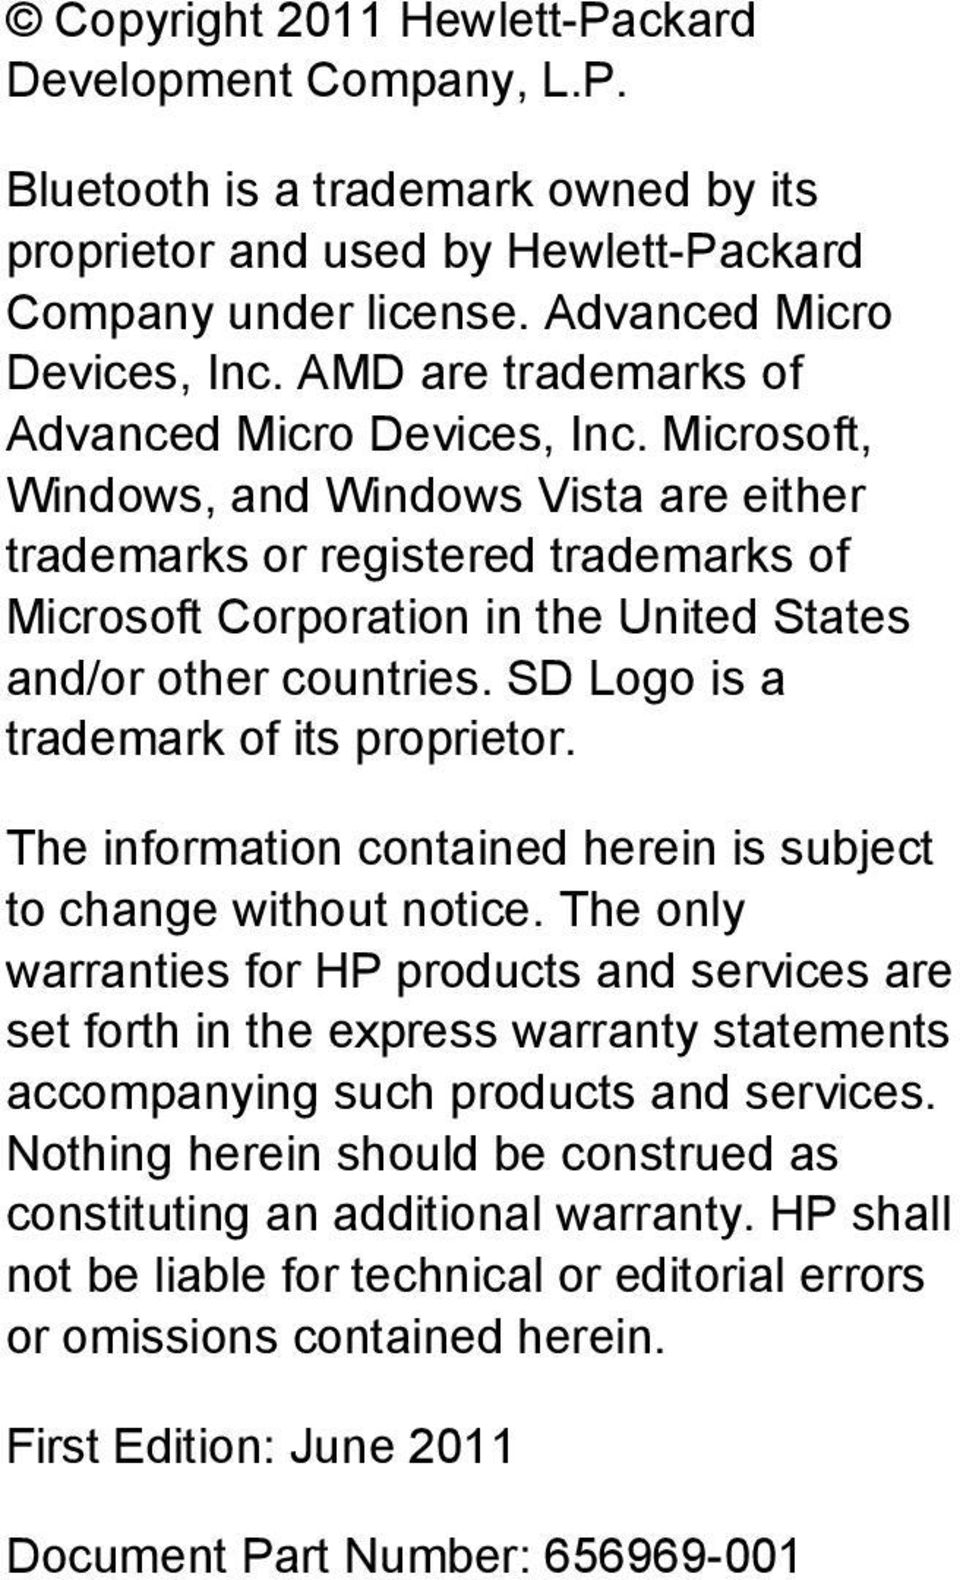 Microsoft, Windows, and Windows Vista are either trademarks or registered trademarks of Microsoft Corporation in the United States and/or other countries. SD Logo is a trademark of its proprietor.